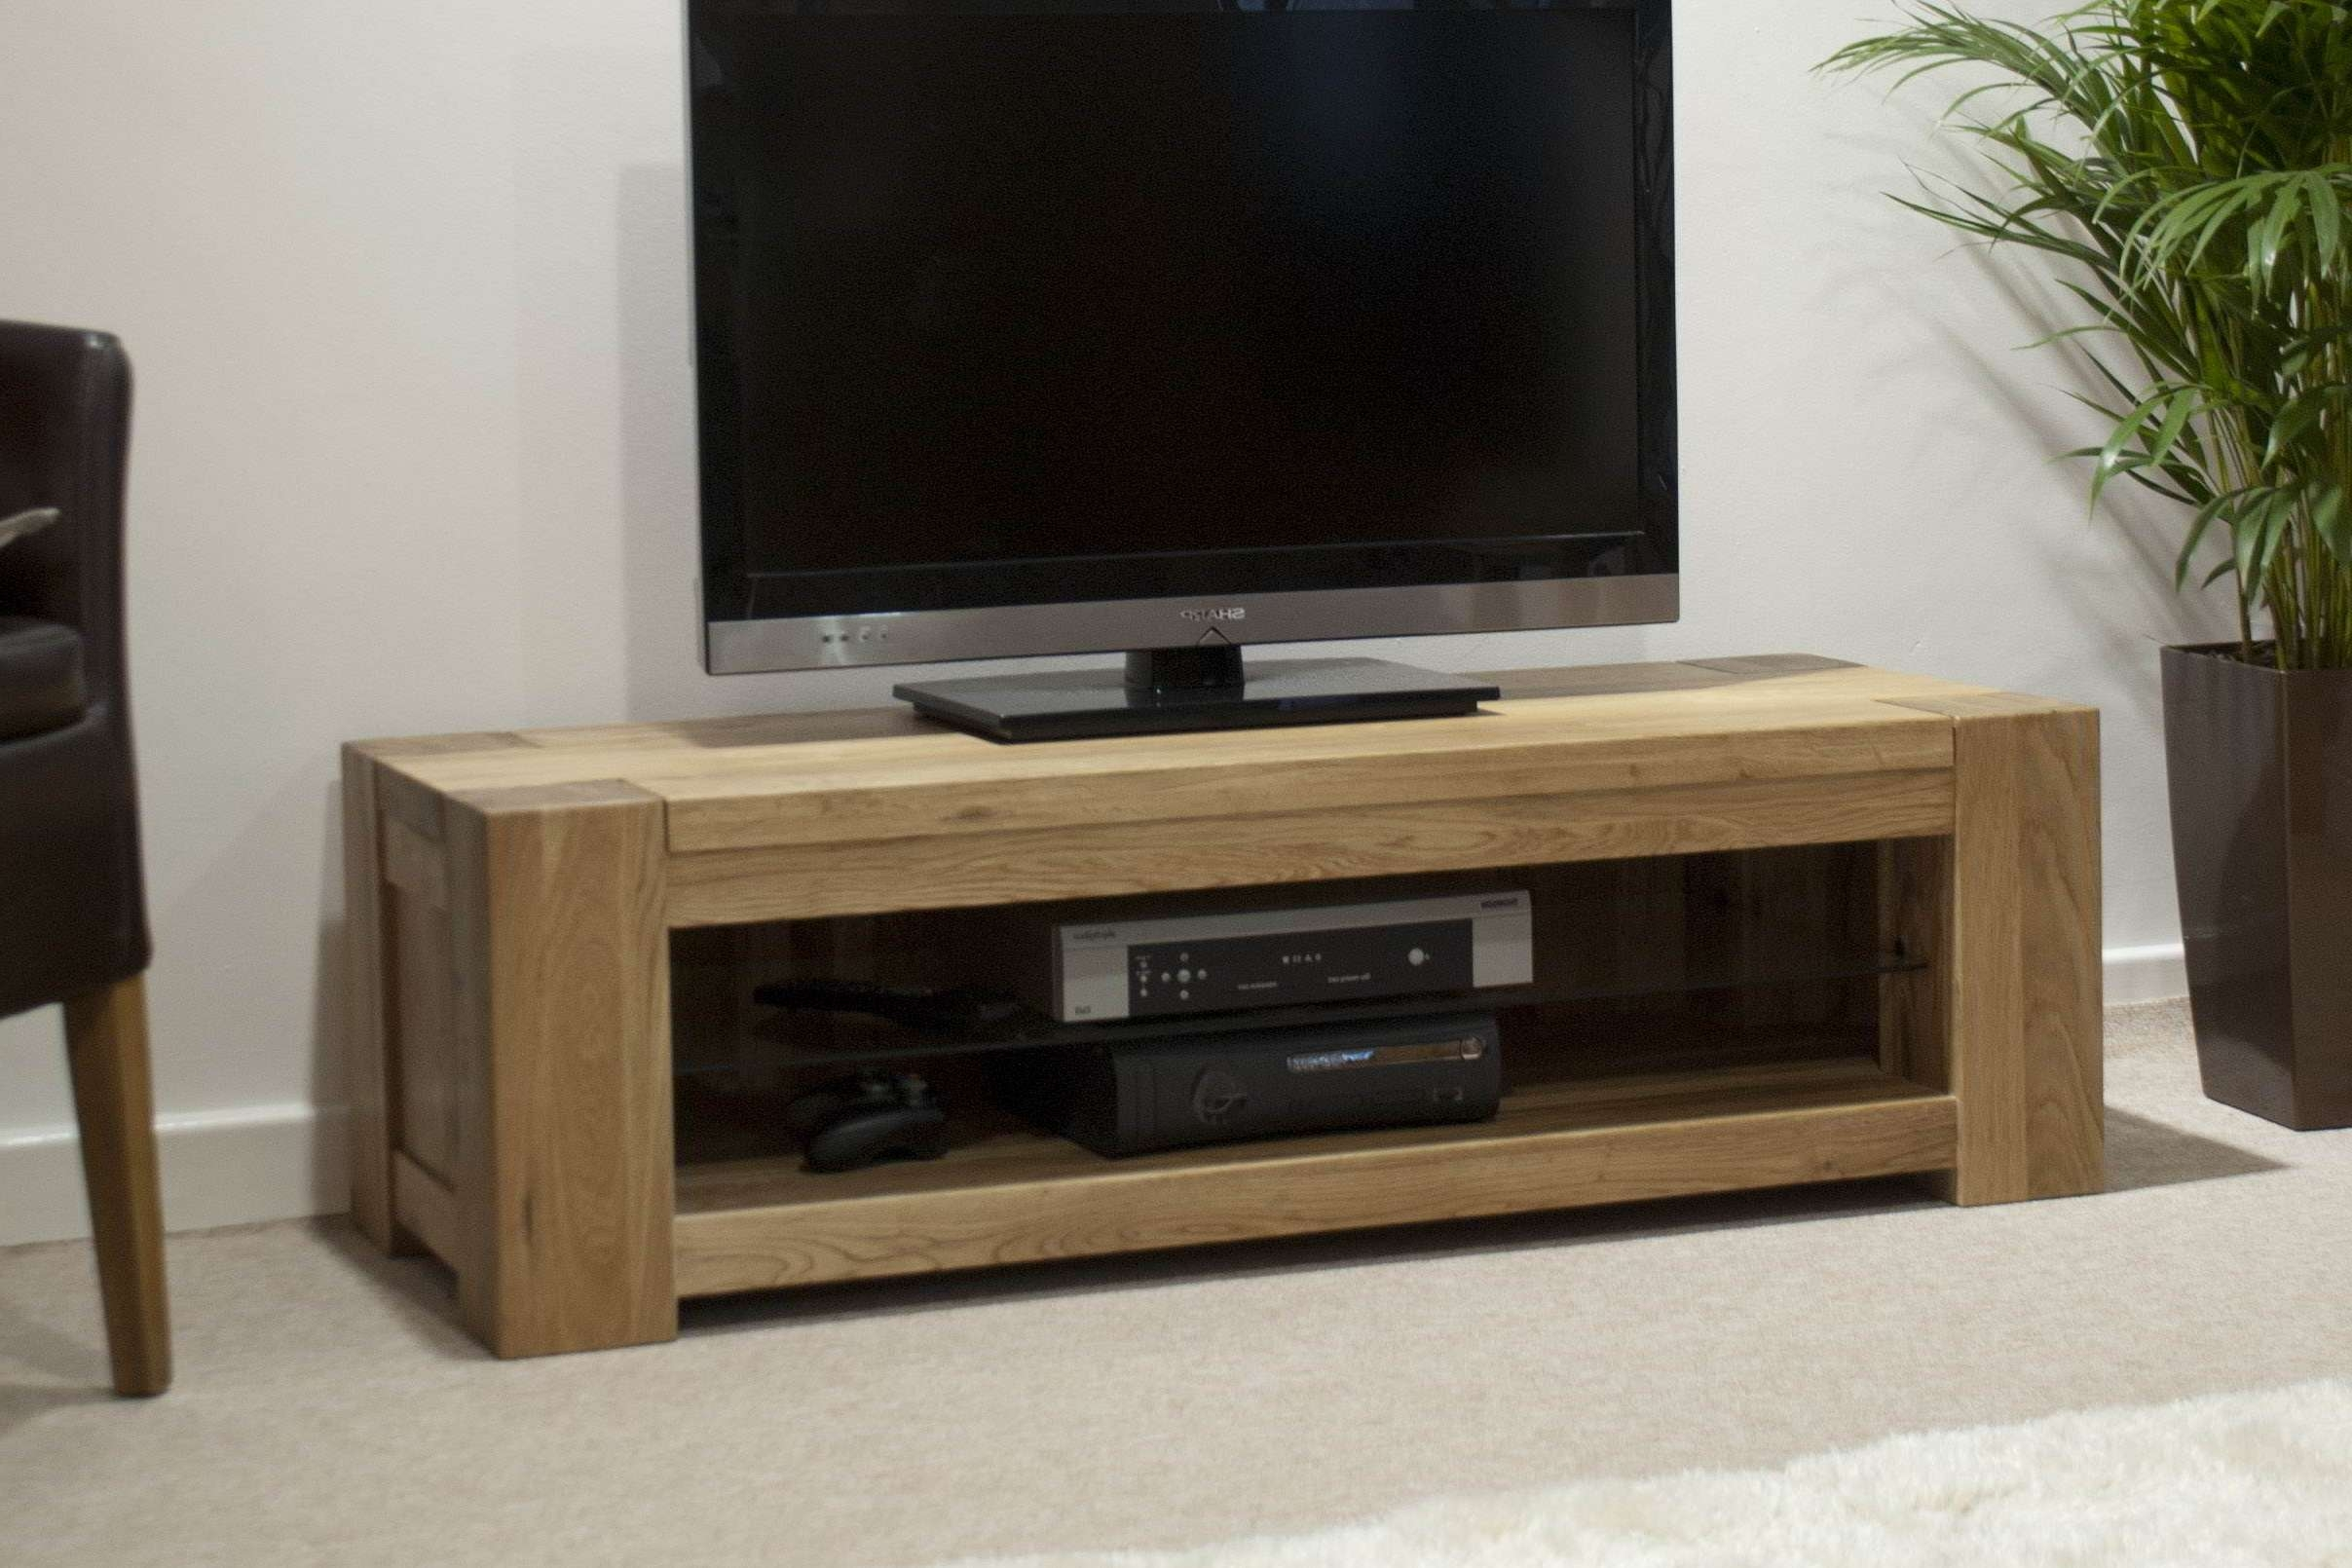 Padova Solid Oak Furniture Plasma Television Cabinet Stand Unit | Ebay Within Oak Furniture Tv Stands (View 9 of 20)